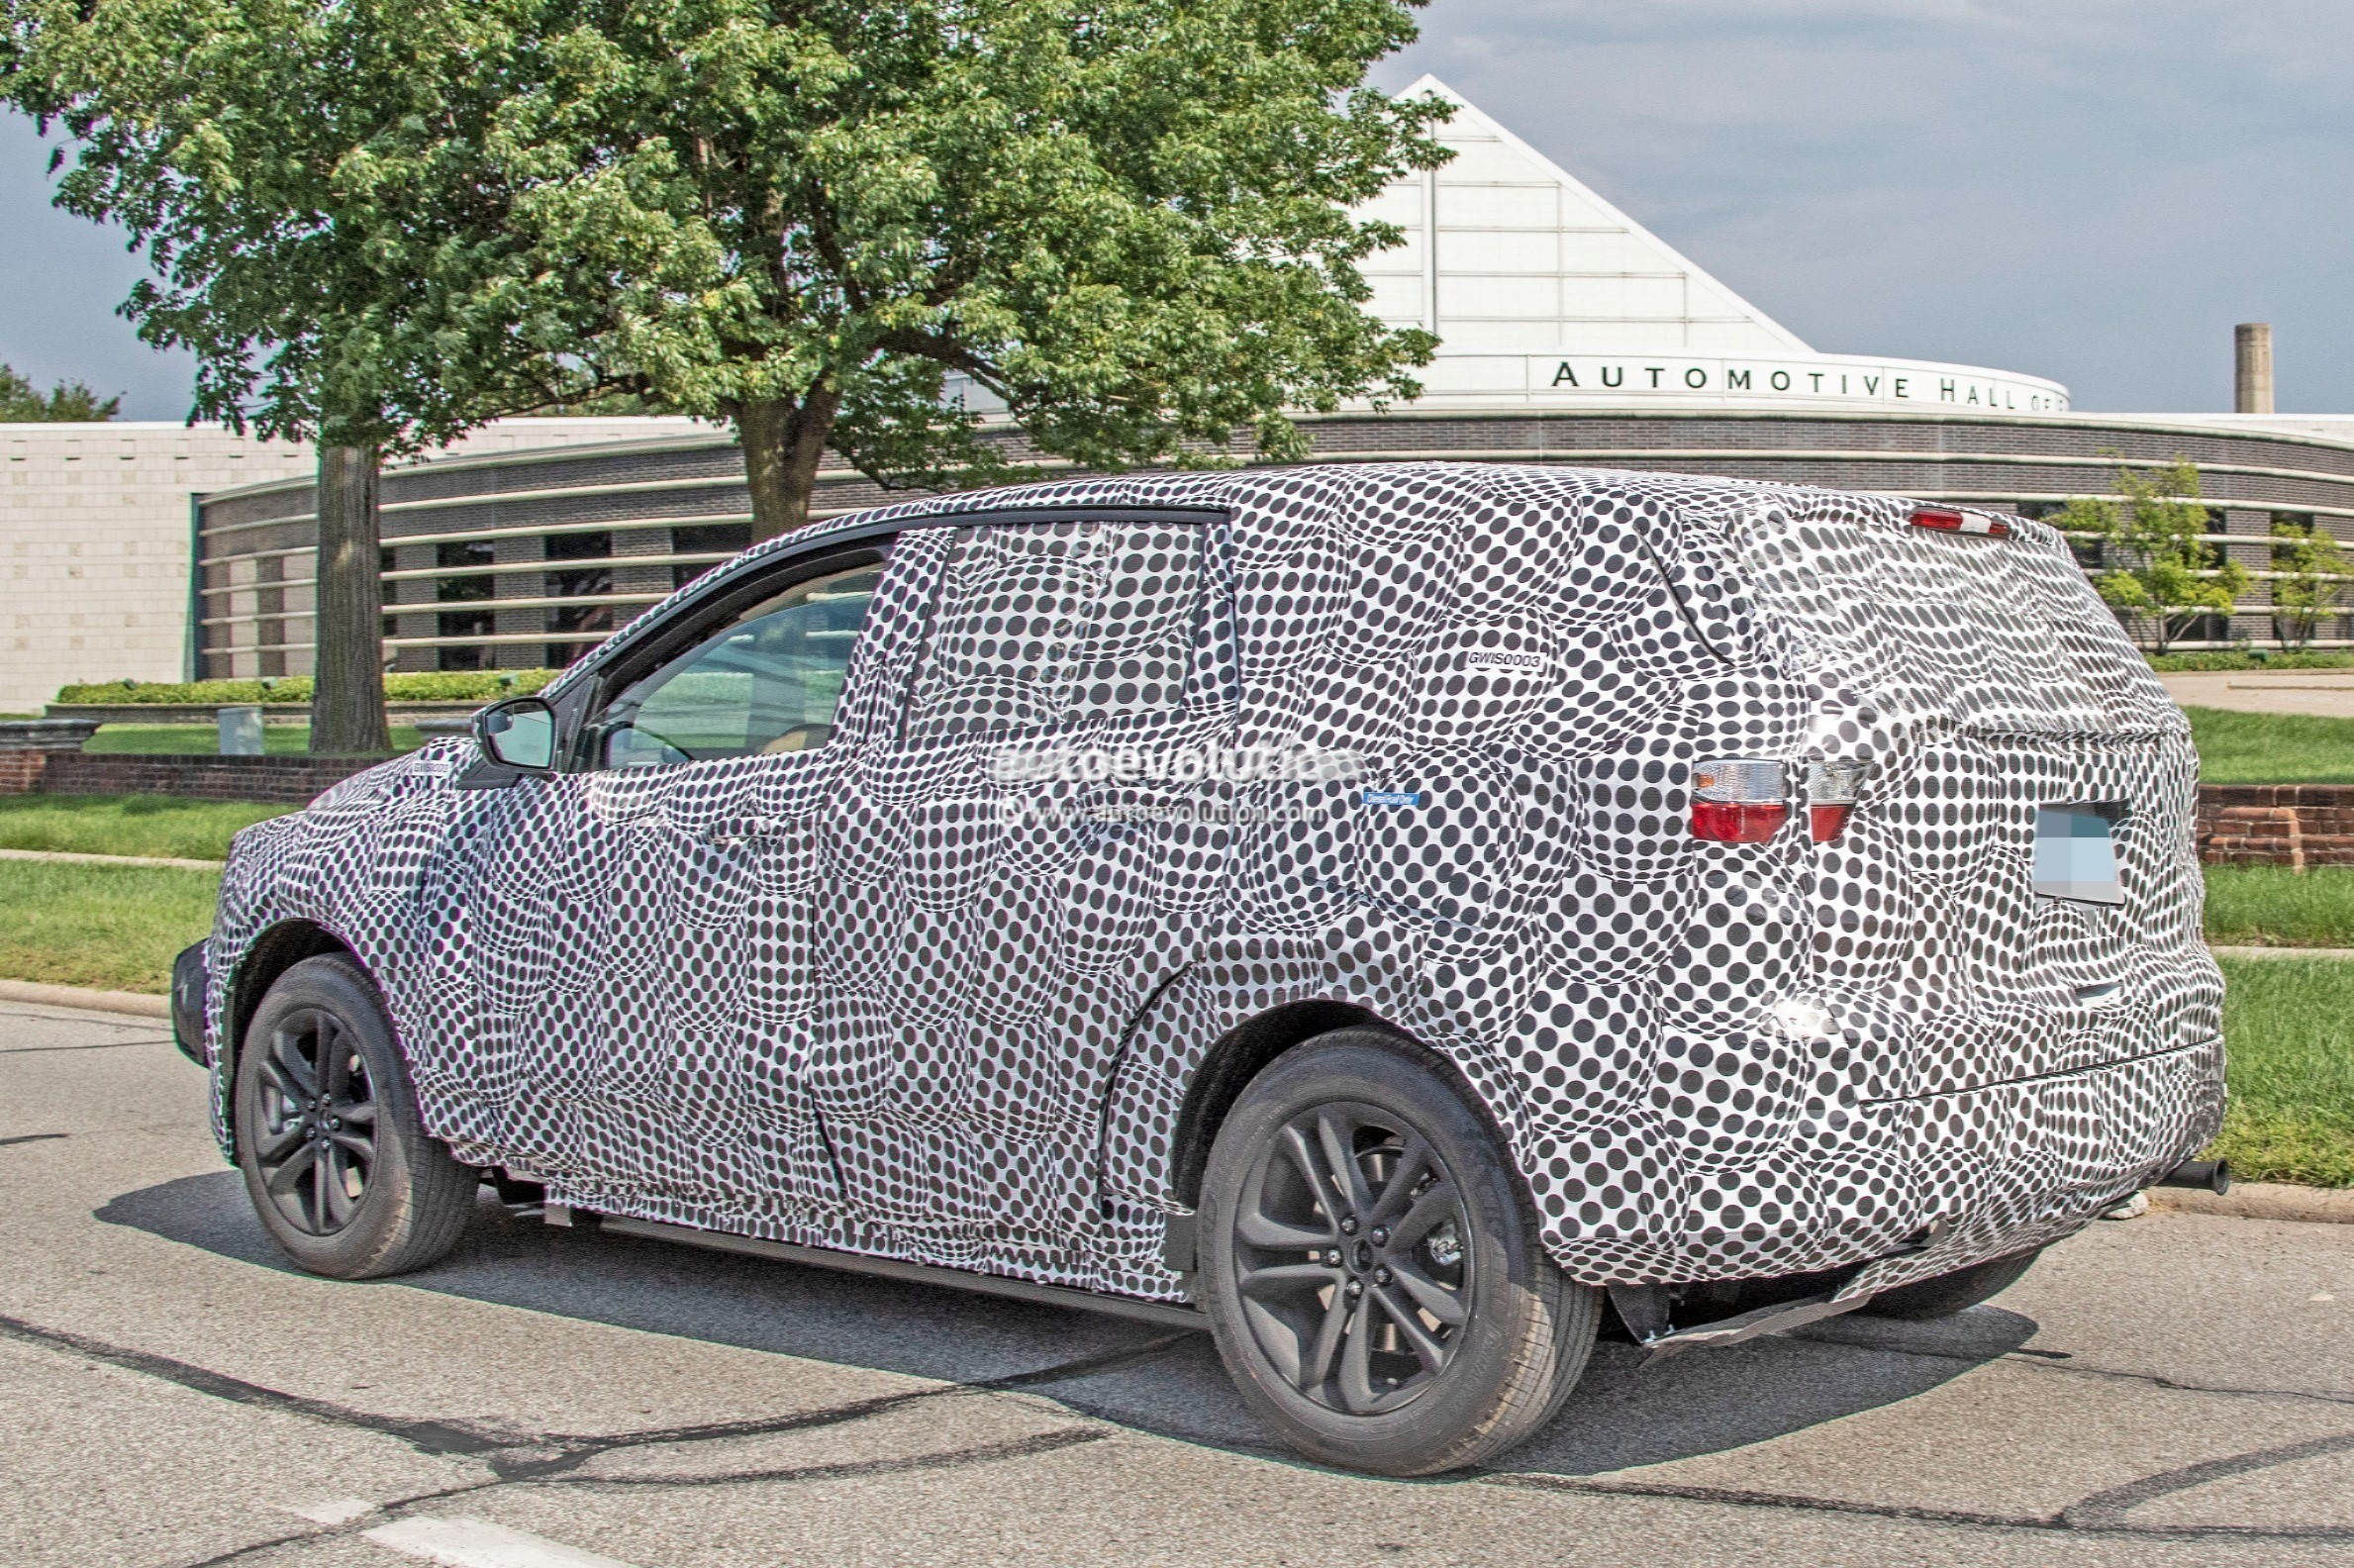 2020 Ford Mach 1 Electric SUV Spied For The First Time - autoevolution